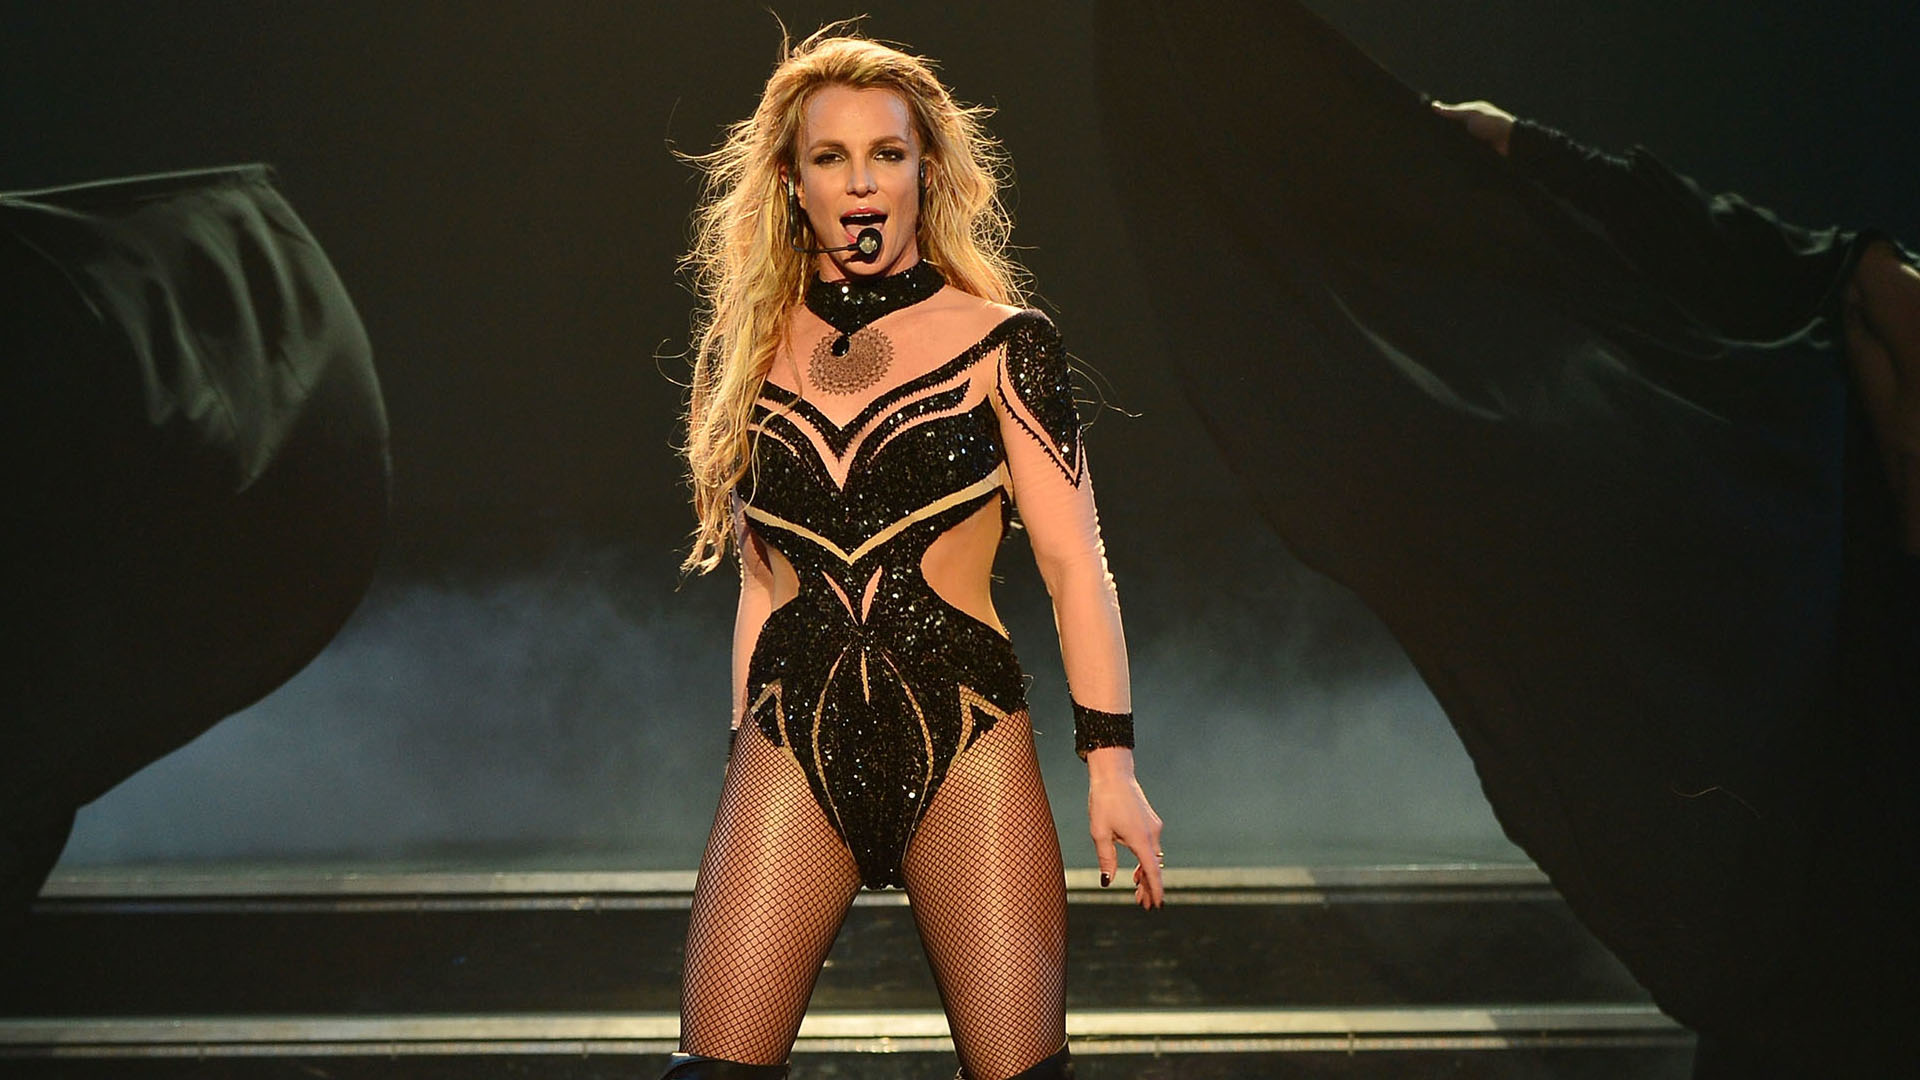 21 of Britney Spears' Amazing Stage Outfits Through the Years